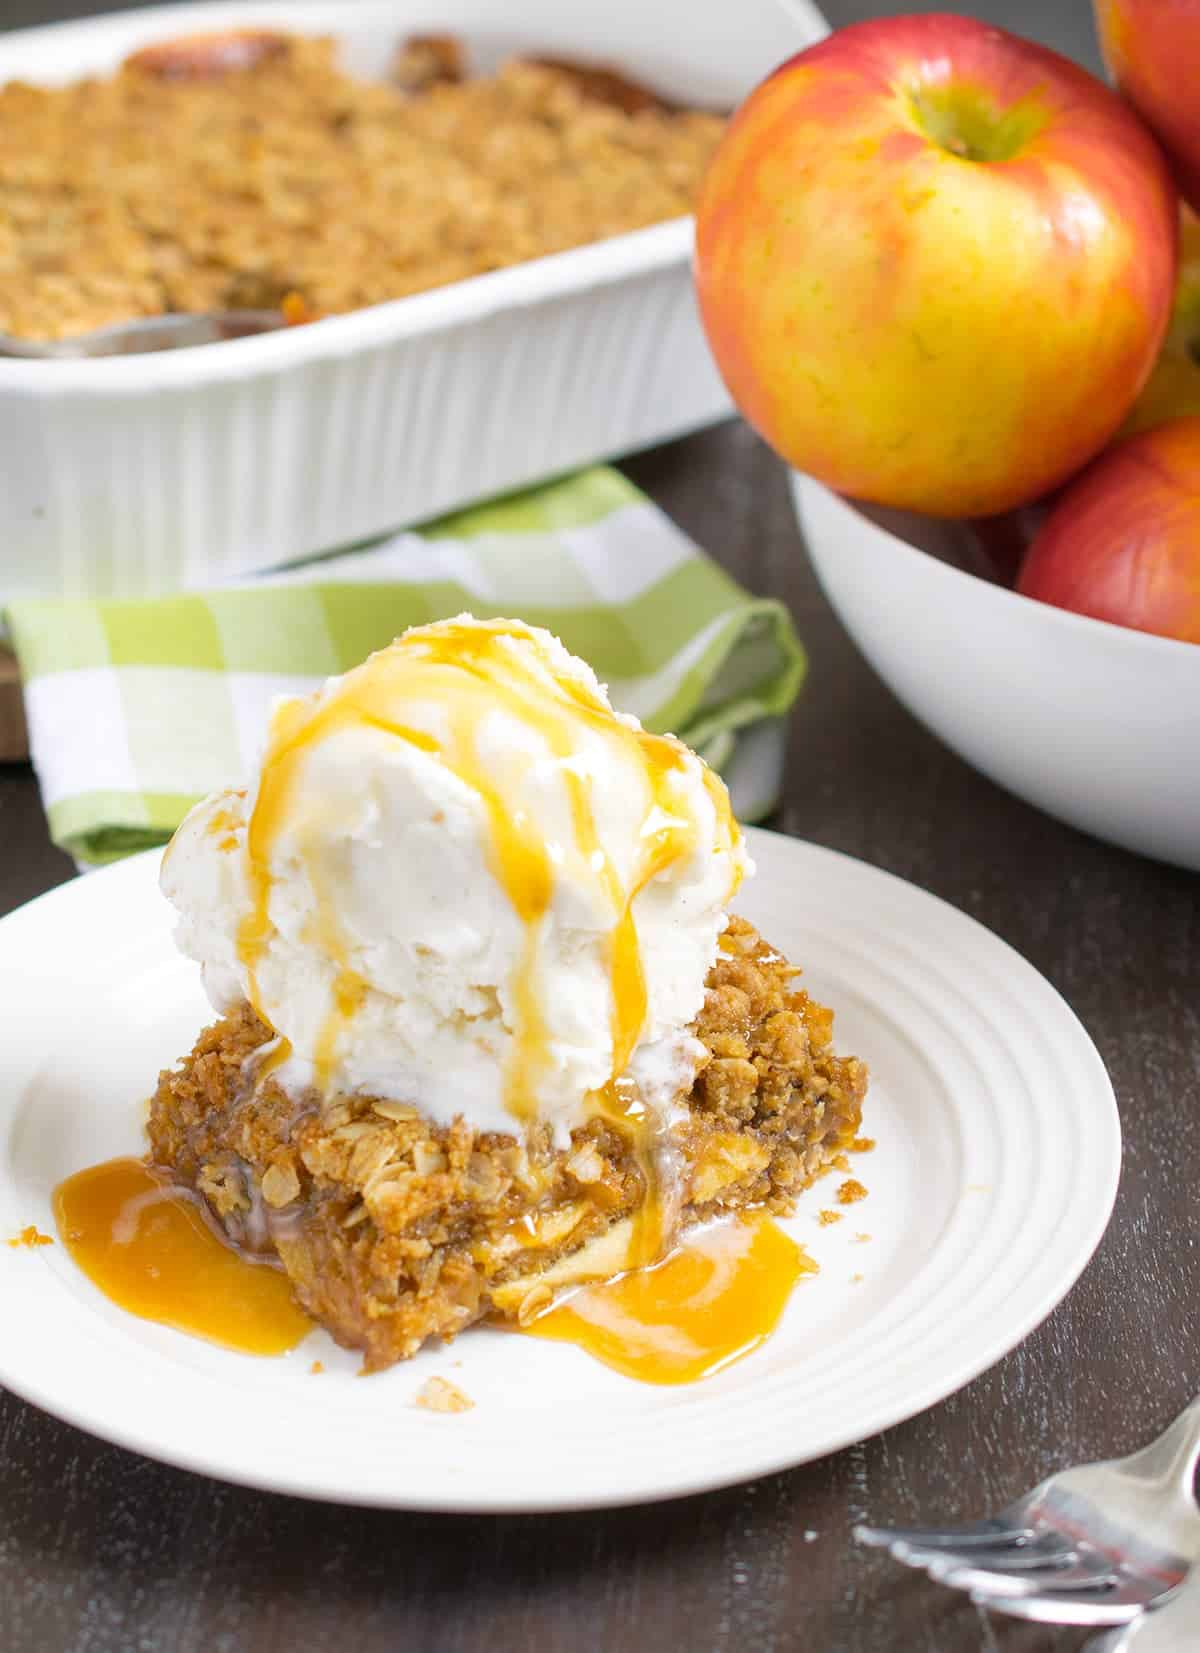 Baked caramel apple crisp bars with vanilla ice cream and caramel sauce on dessert plate beside bowl of apples